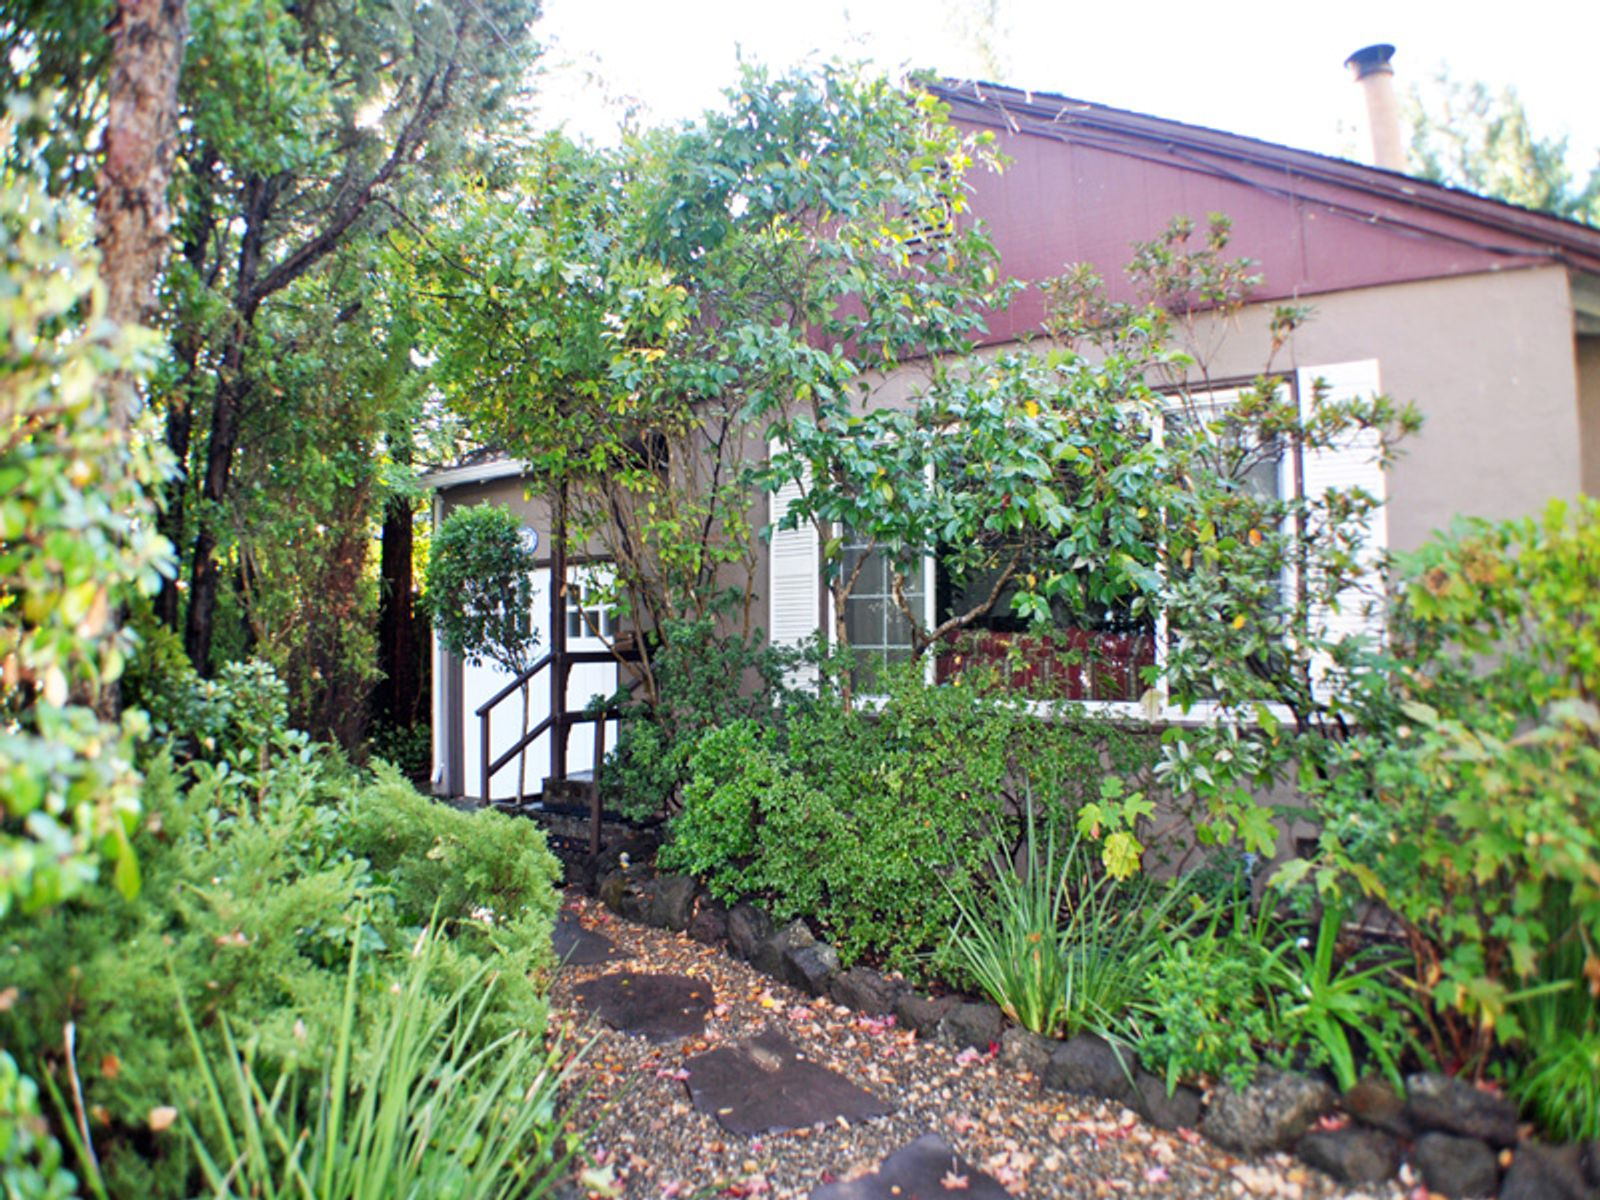 Wine Country Cottage, Sonoma CA Single Family Home - Sonoma - Napa Real Estate